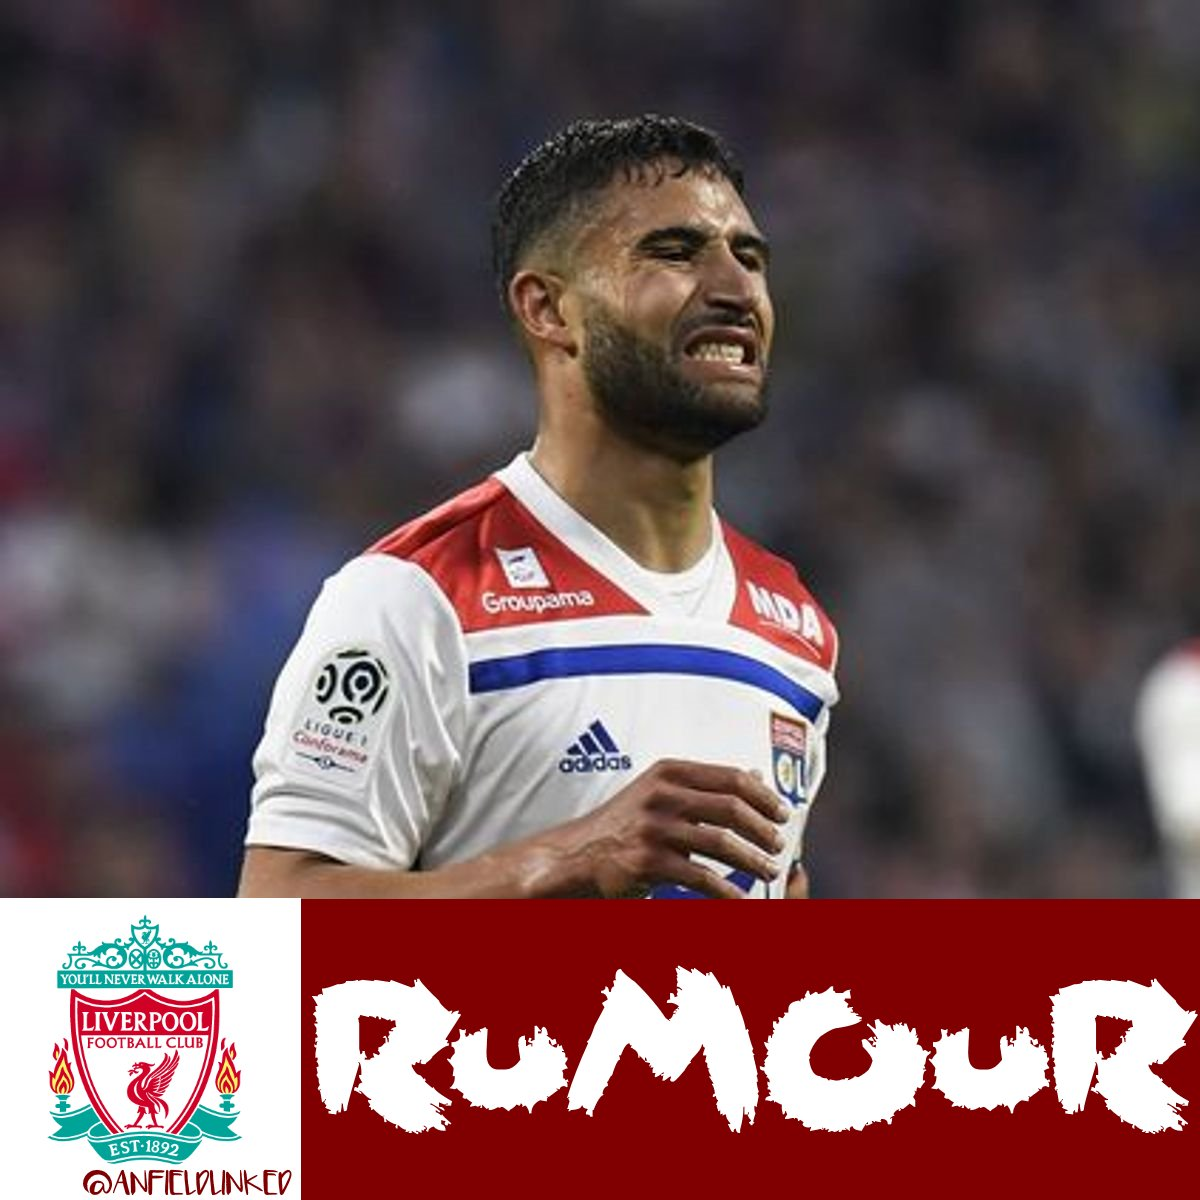 Transfer News RUMOUR: According to reports Nabil Fekir to Liverpool is almost done. Liverpool will pay a larger fee but spread it over a longer period of time, Suggestions that Fekir will cut short his holiday much like Shaqiri to get the deal over the line by next weekend #LFC<br>http://pic.twitter.com/G33XVxMk5V